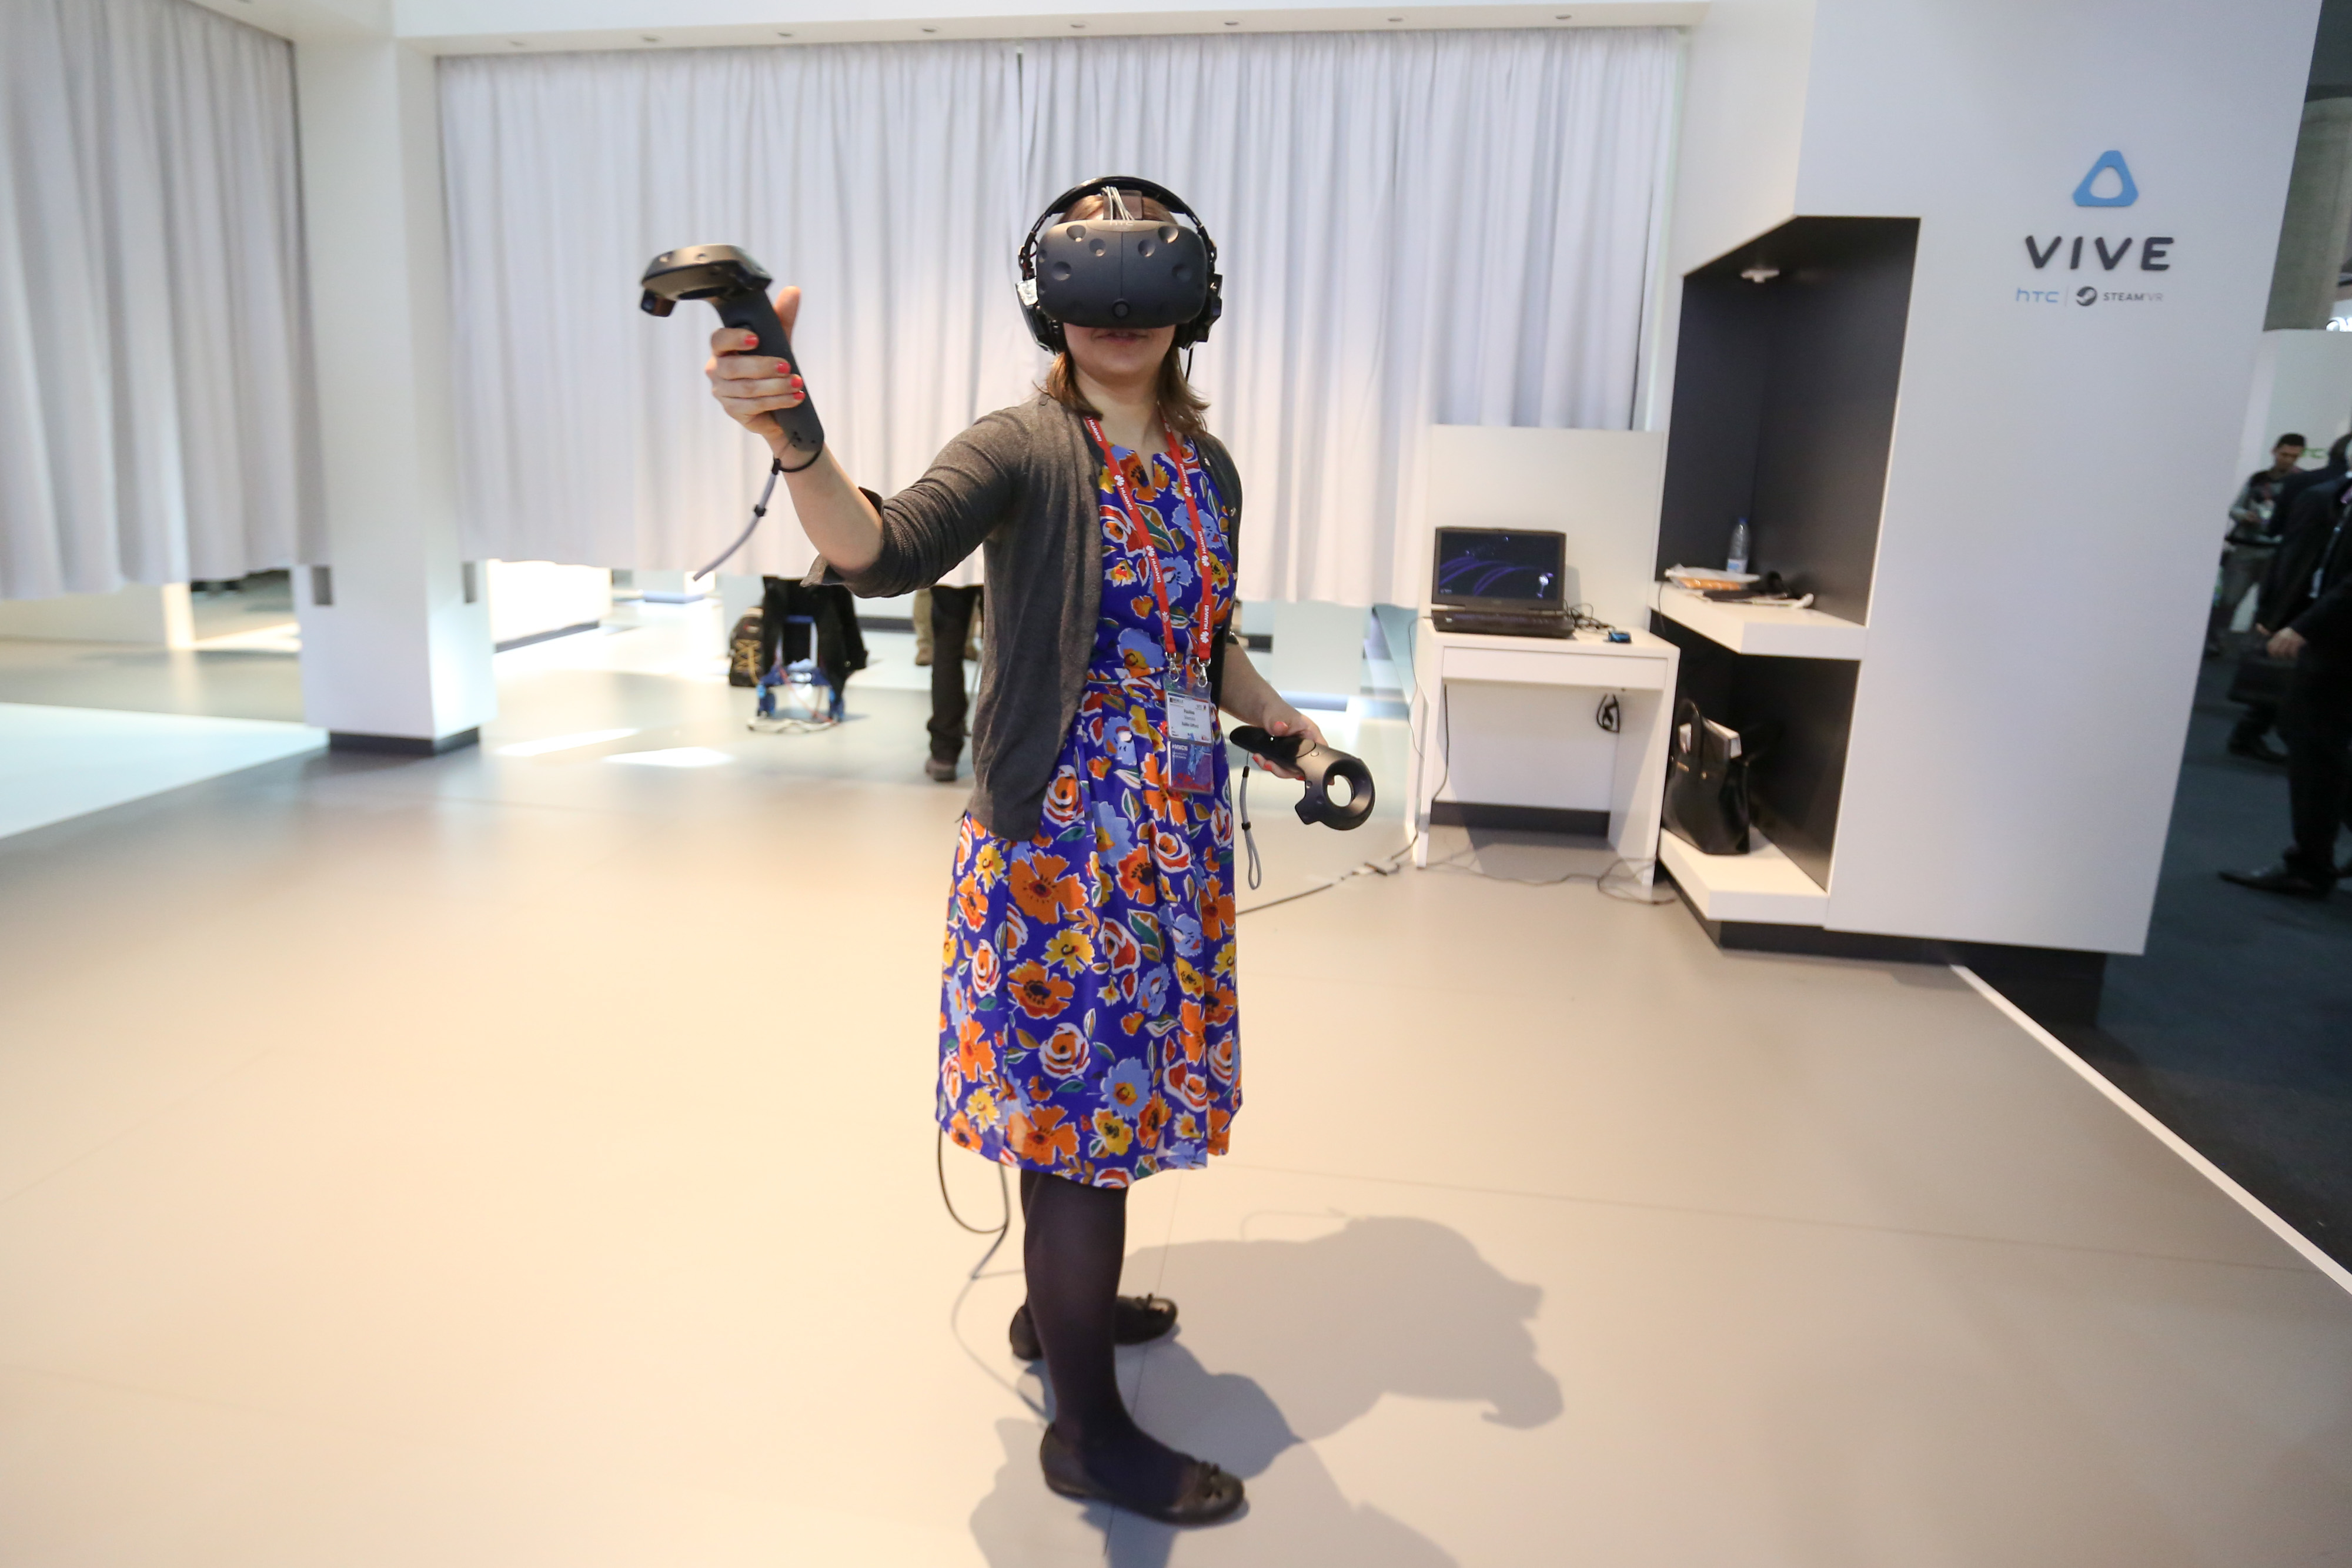 An attendee tries the Vive virtual reality experience on the HTC Corp. stand at the Mobile World Congress in Barcelona, Spain, on Monday, Feb. 22, 2016.